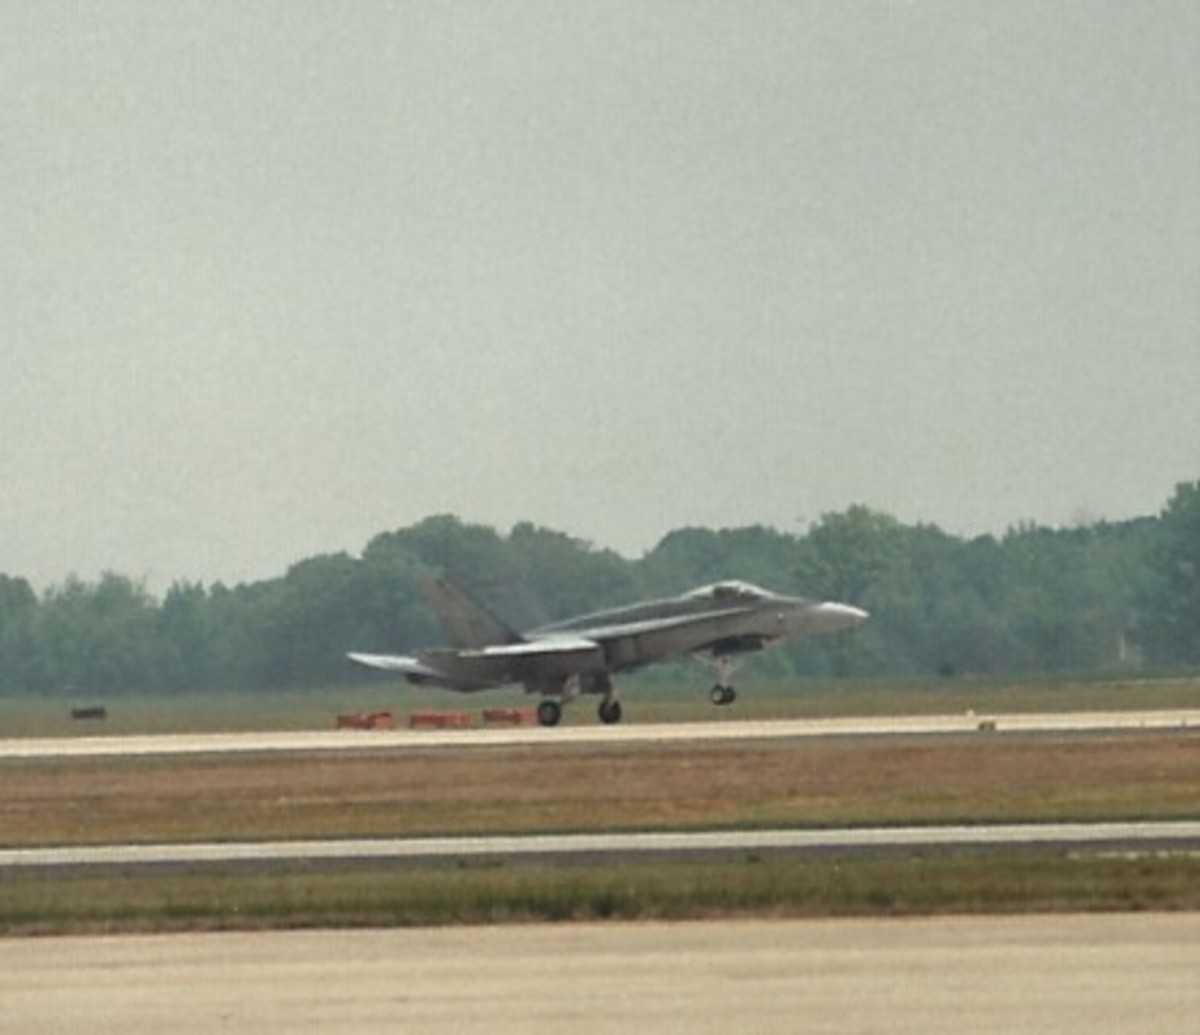 A CF-188 of the Canadian Air Force taking off at Andrews AFB, MD.  Notice the false canopy painted in the aircraft's underside.